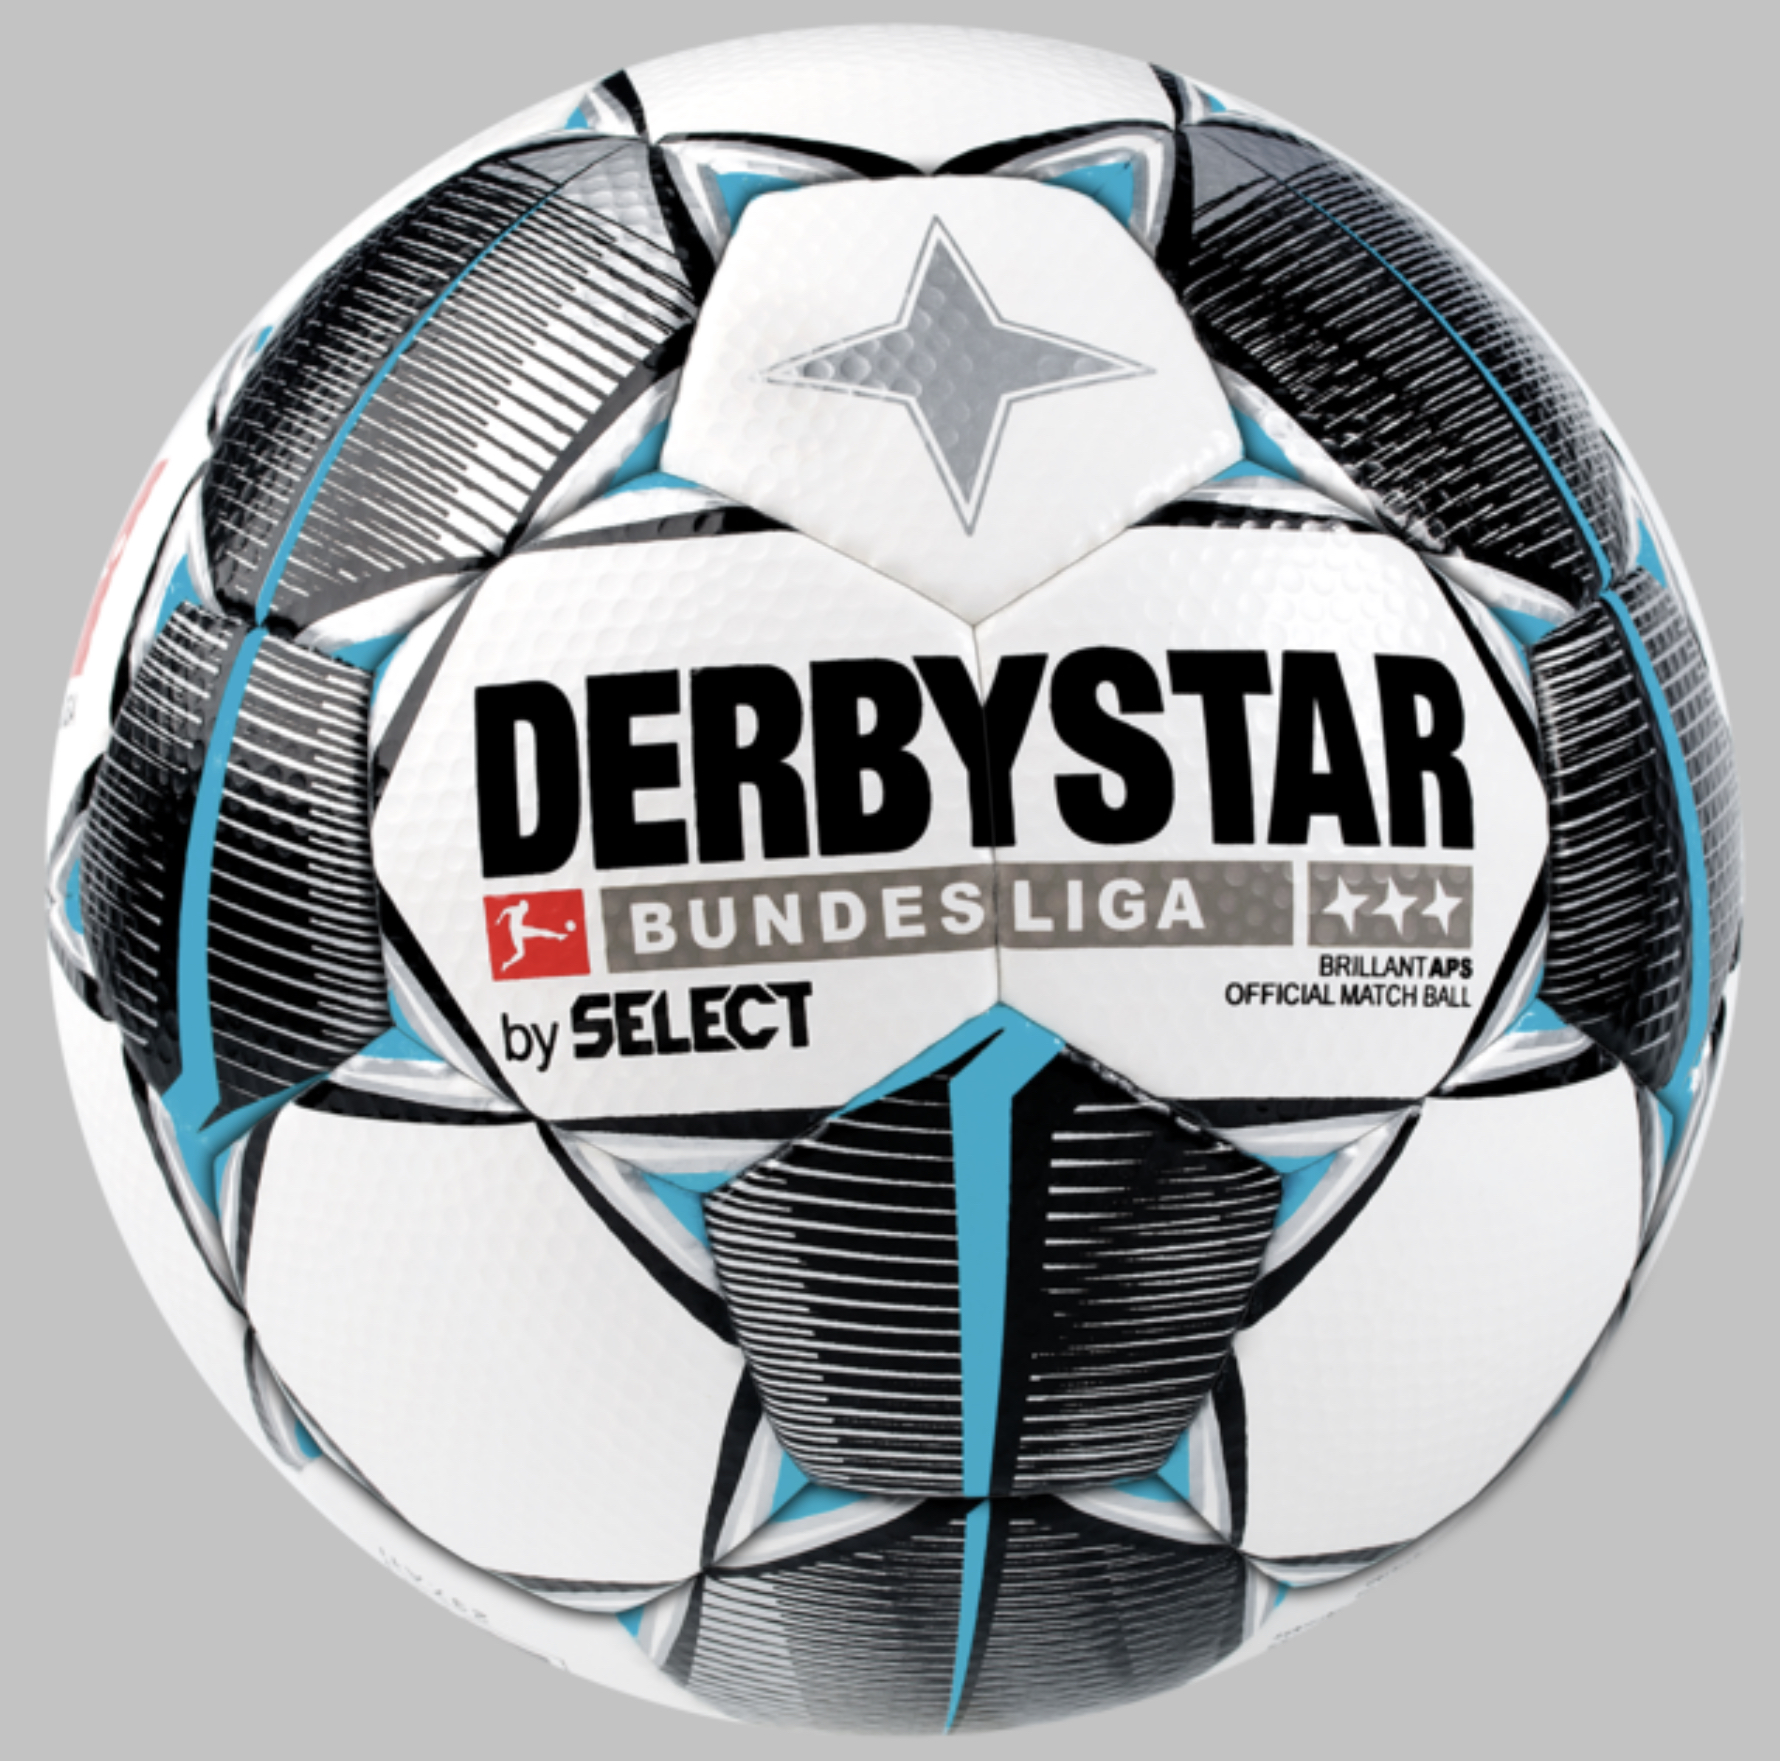 Derbystar Brillant APS Bundesliga 19/20